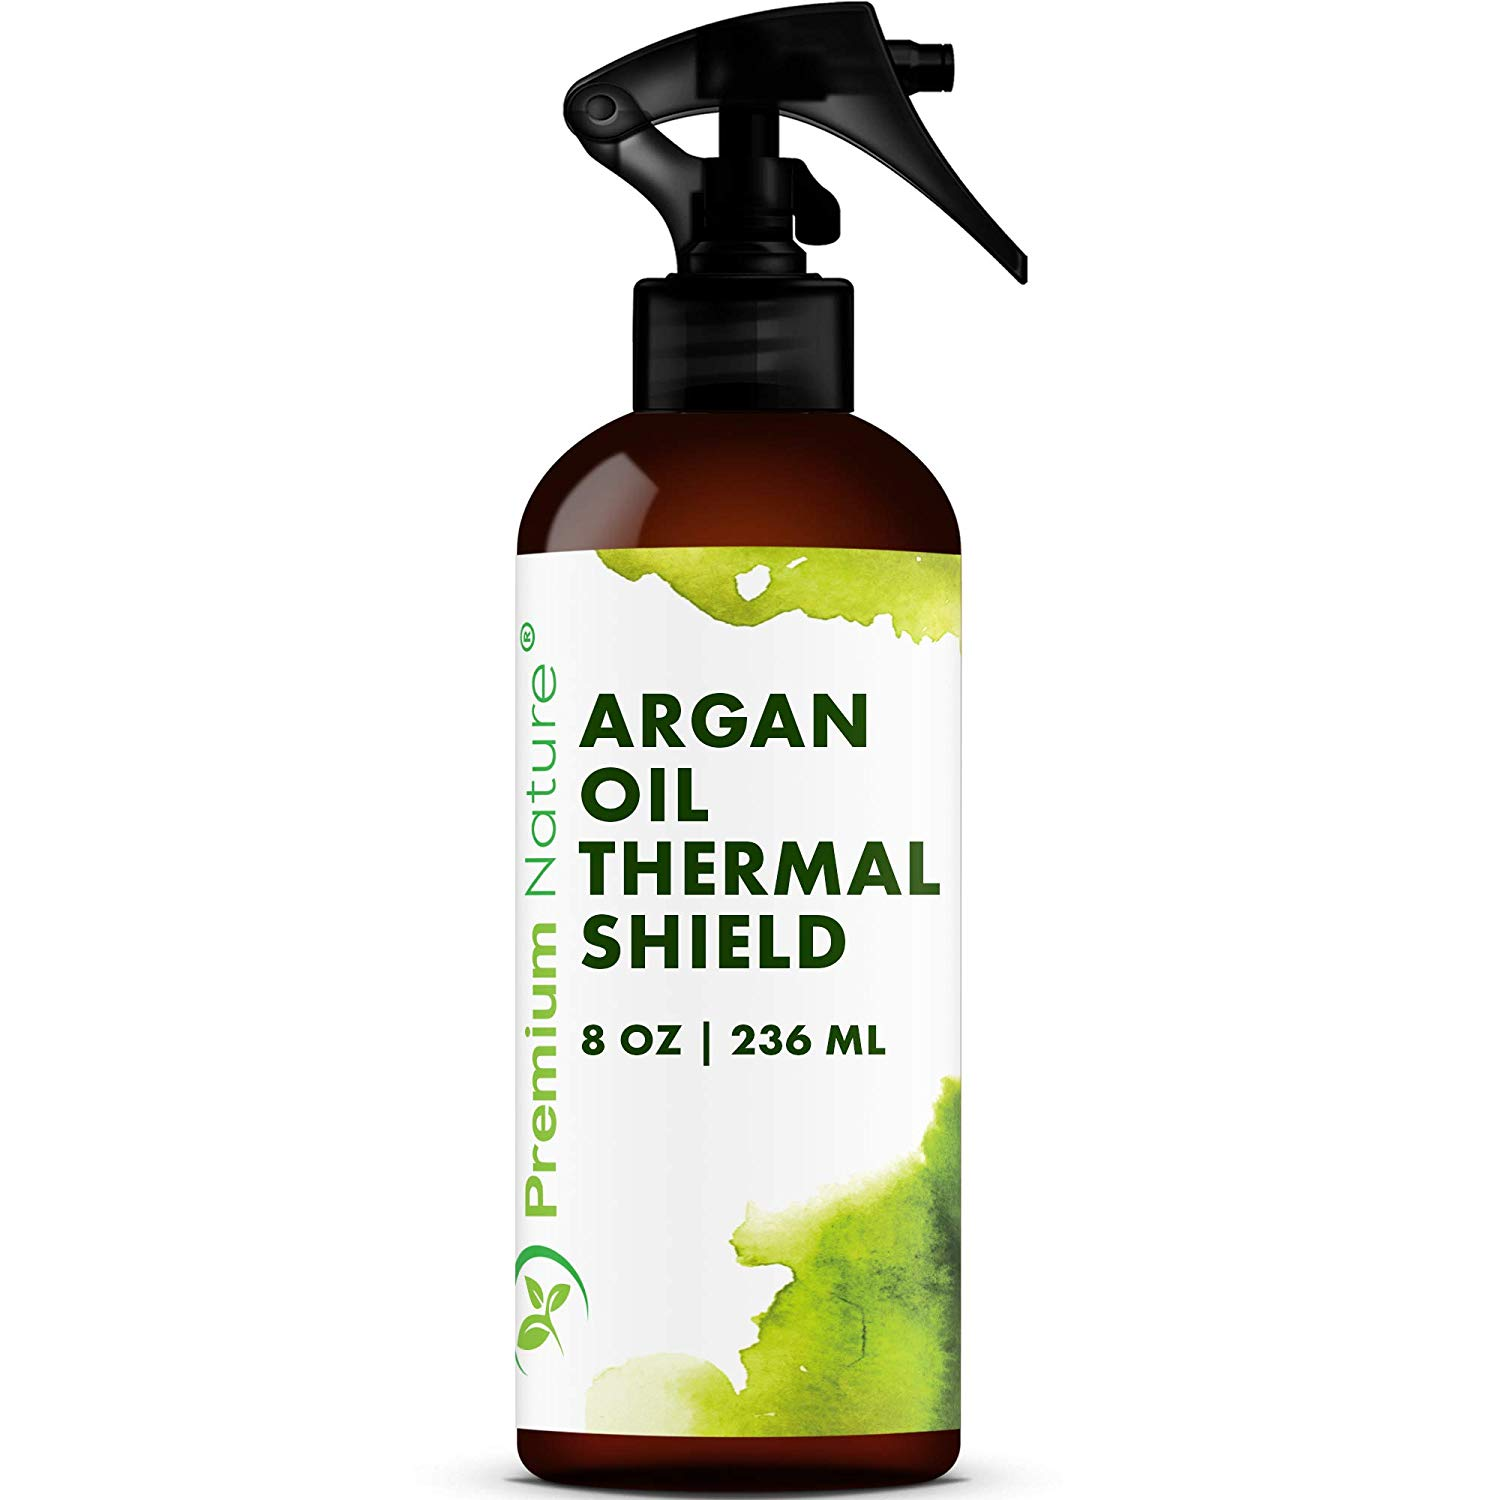 premium nature argan oil thermal shield